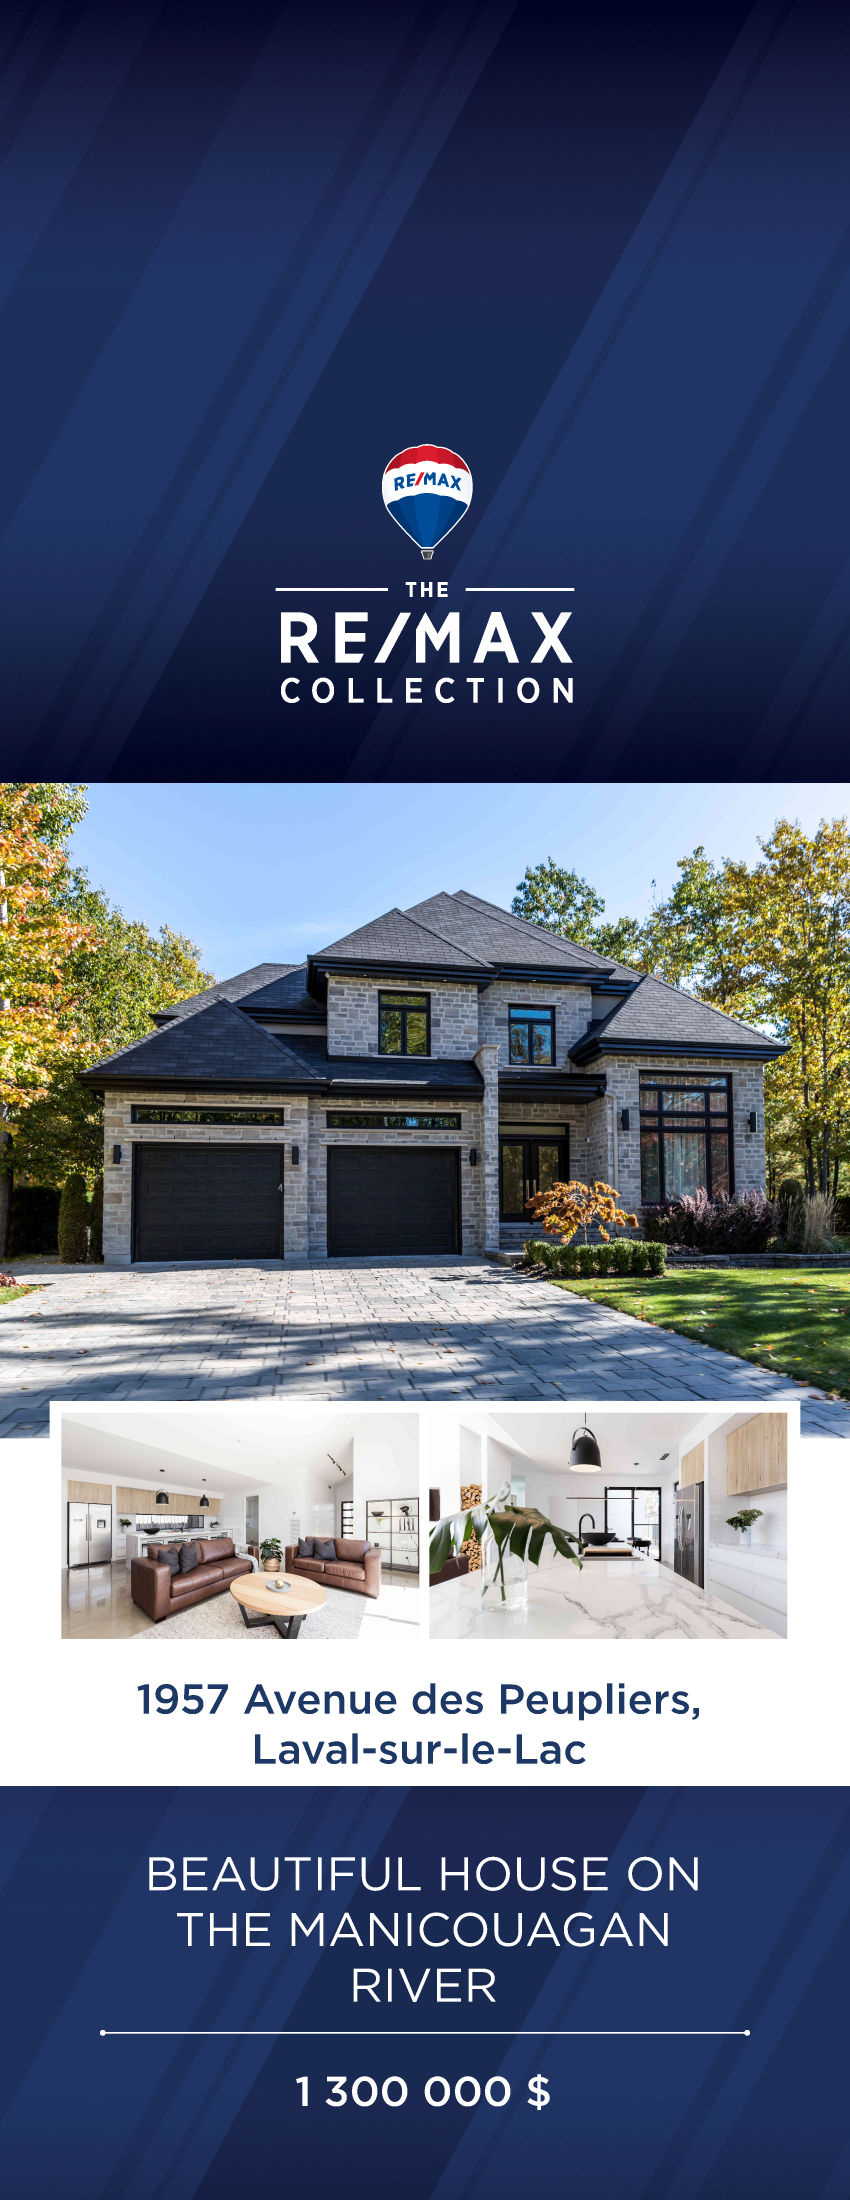 1 | Remax The Collection 2